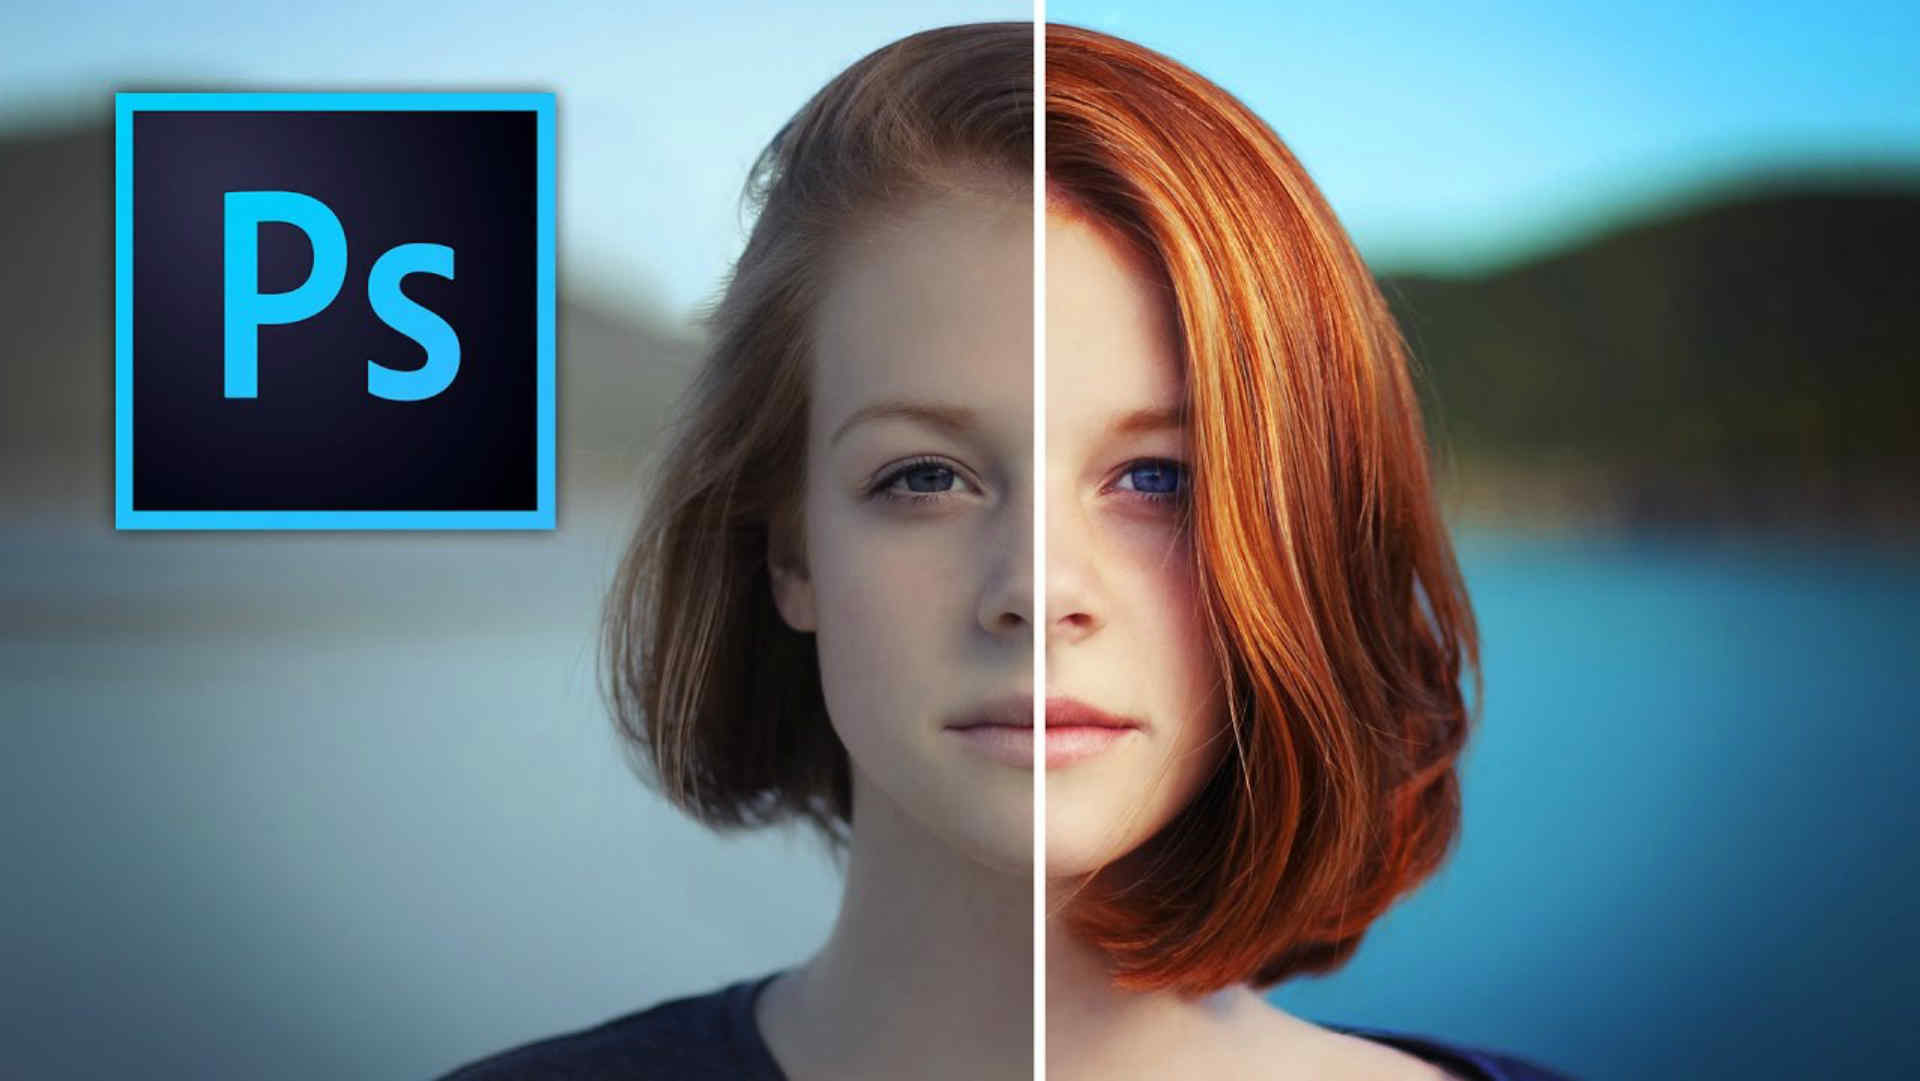 how to put a timeline in photoshop